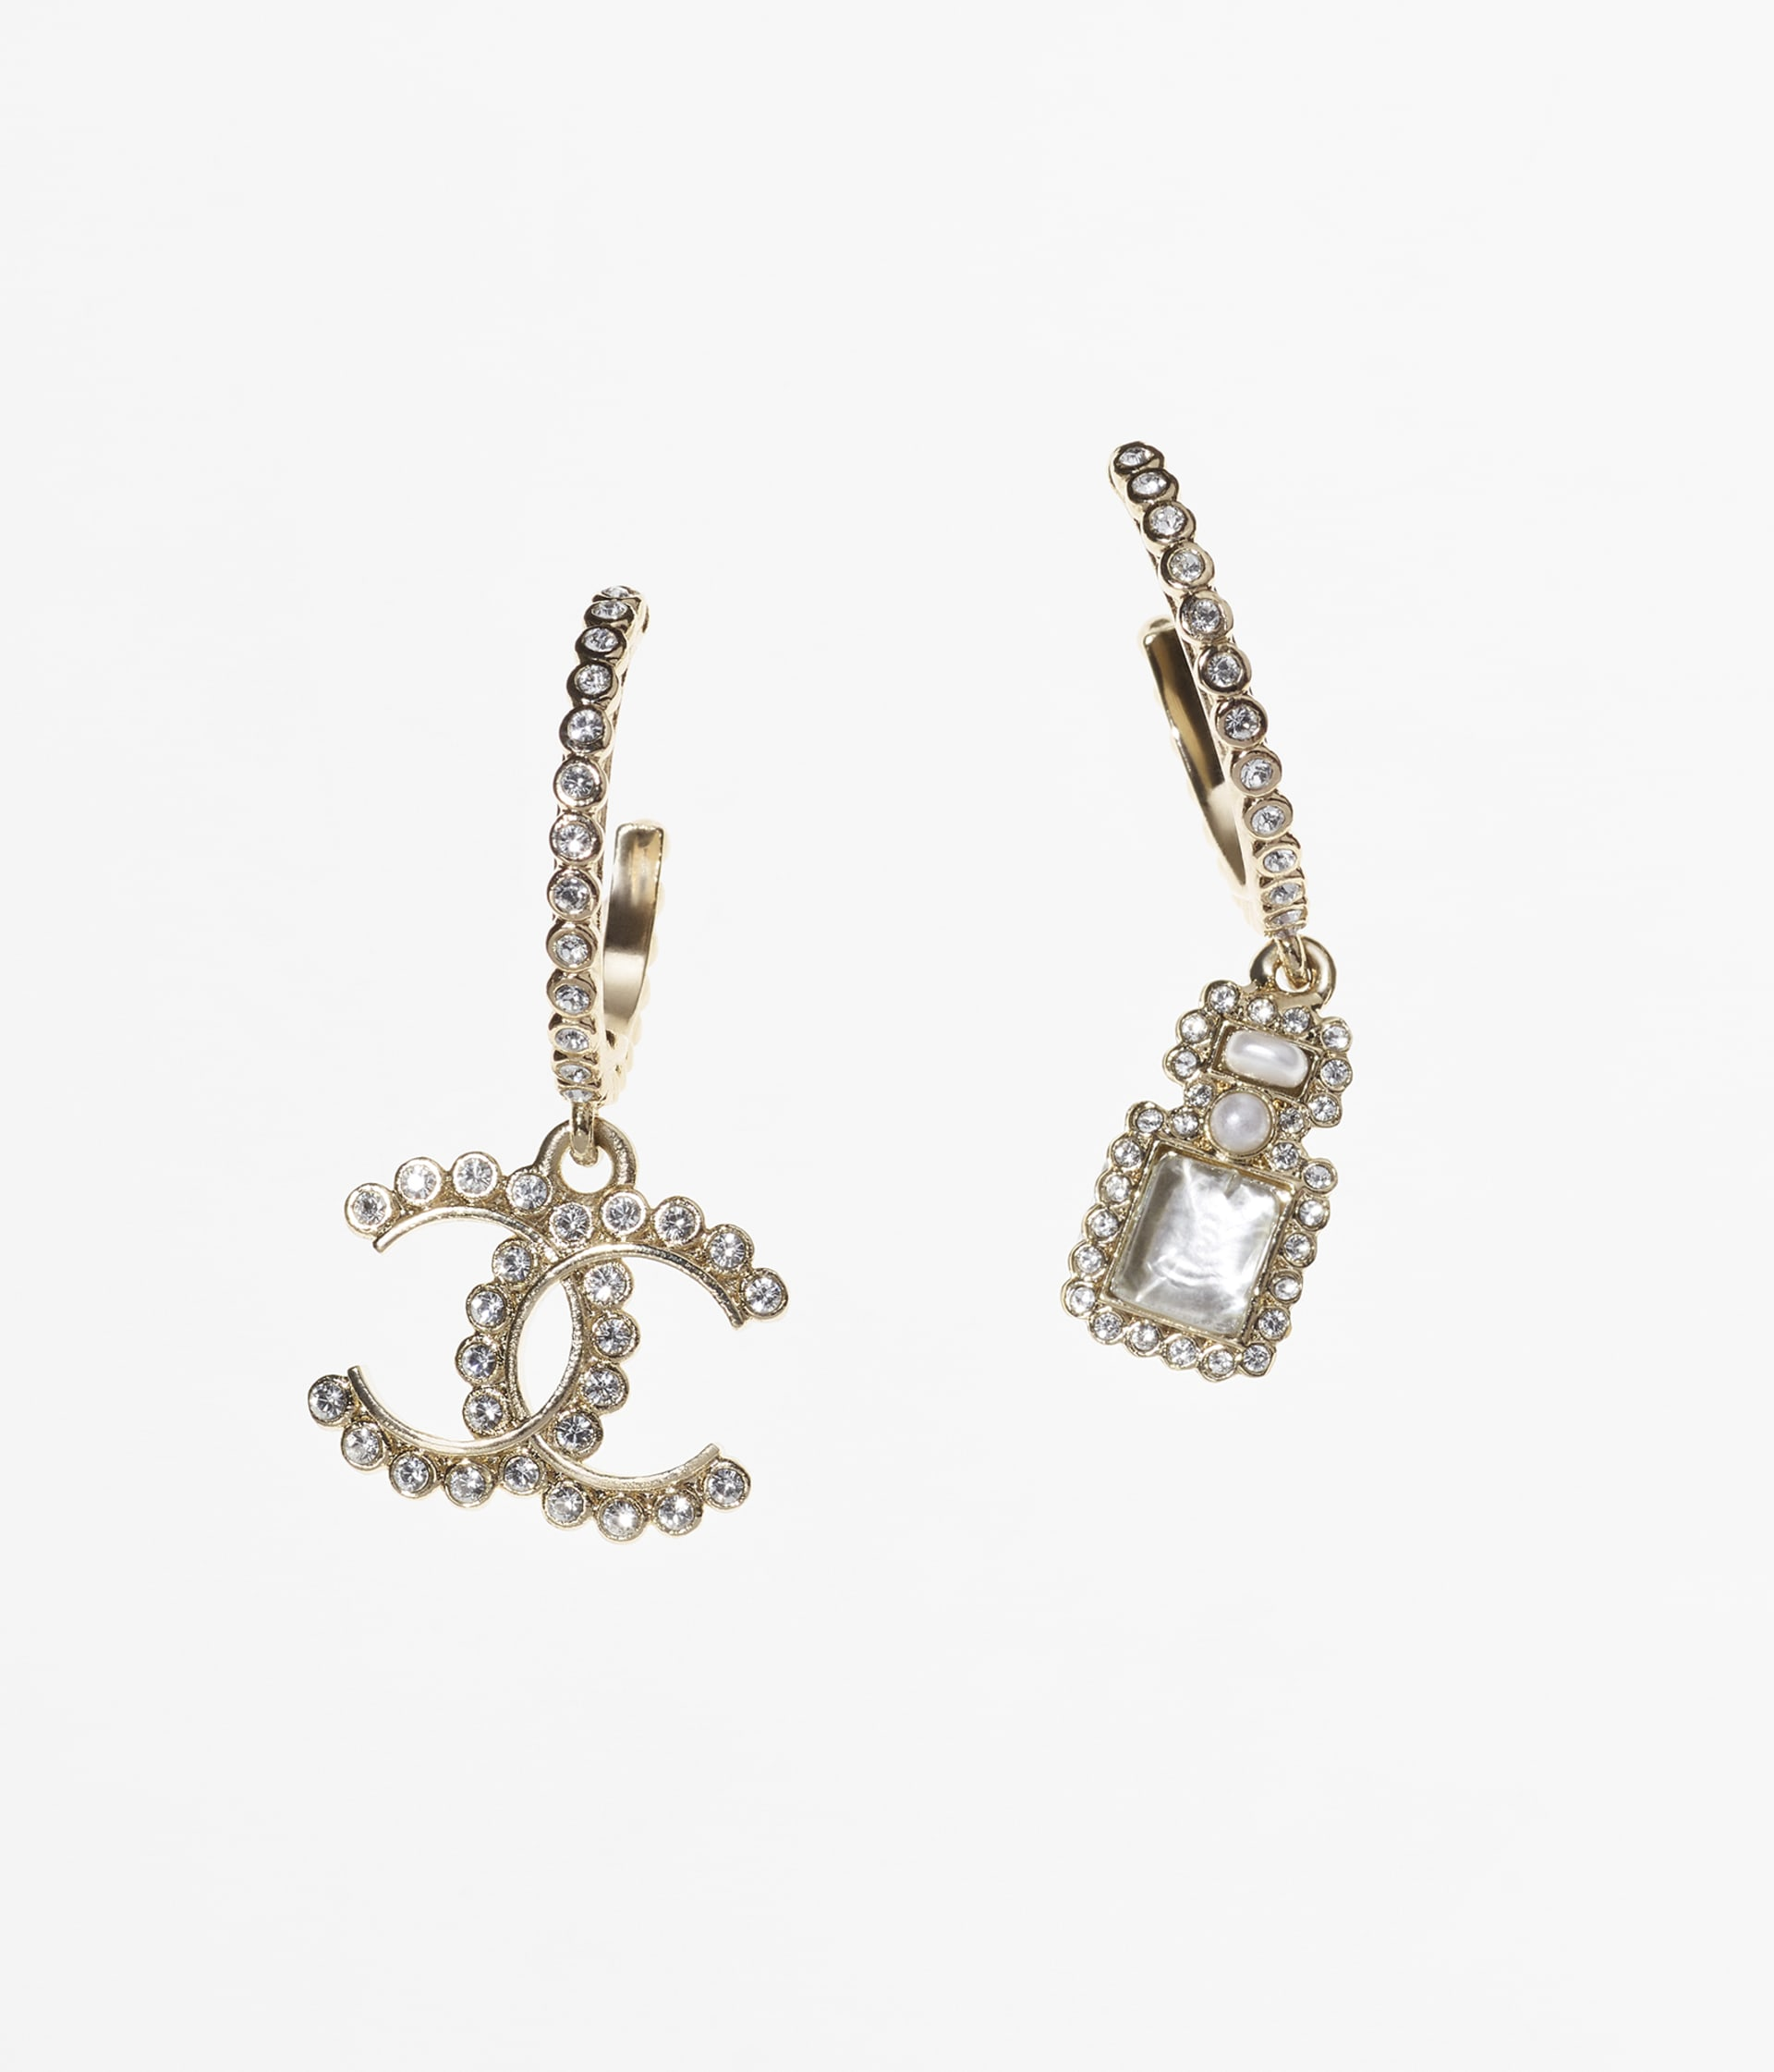 image 1 - Earrings - Metal, Resin, Glass Pearls, Glass & Strass - Gold, Pearly White & Crystal